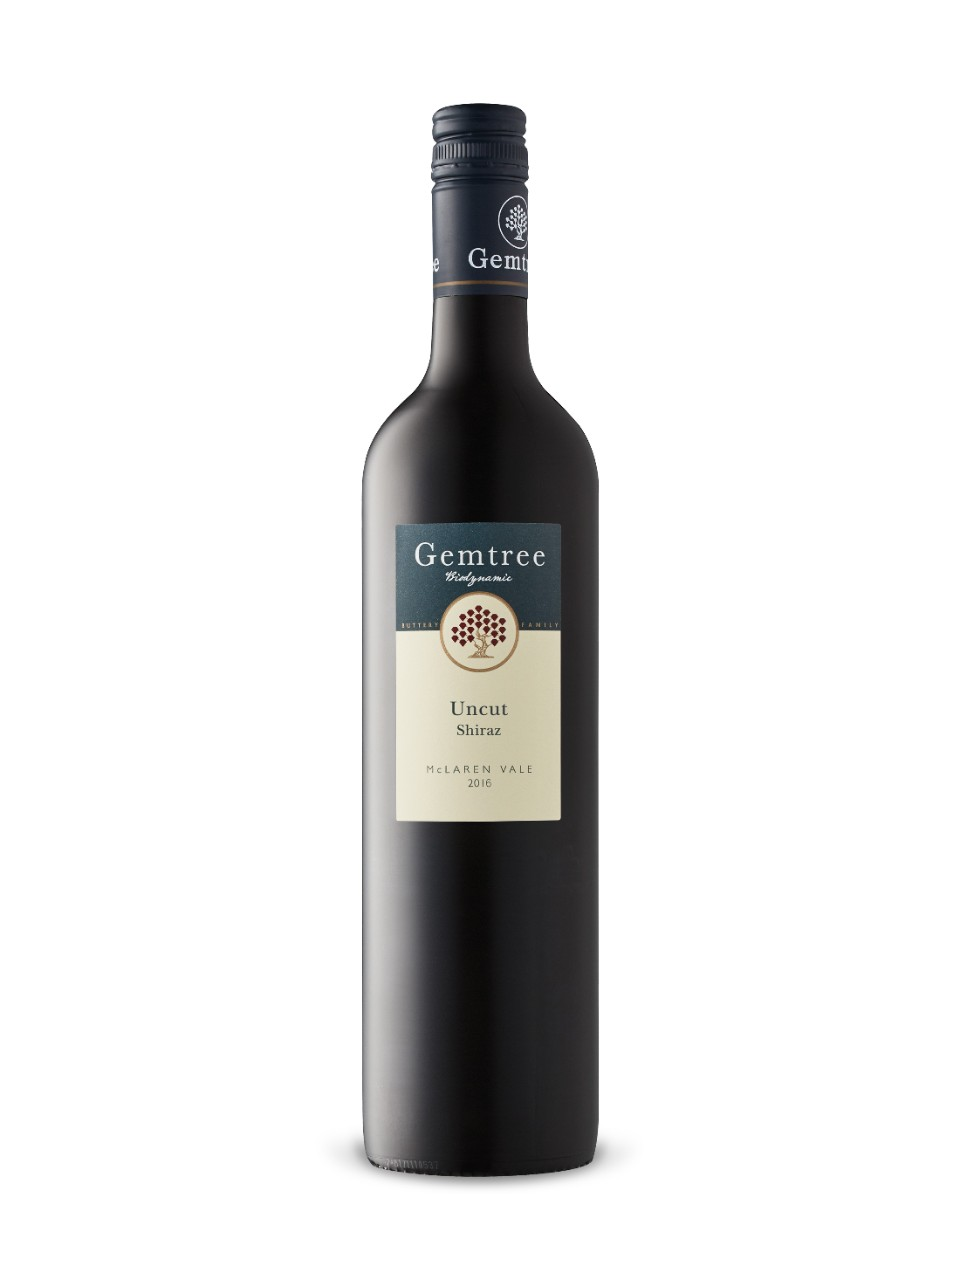 Gemtree Uncut Shiraz 2016 from LCBO